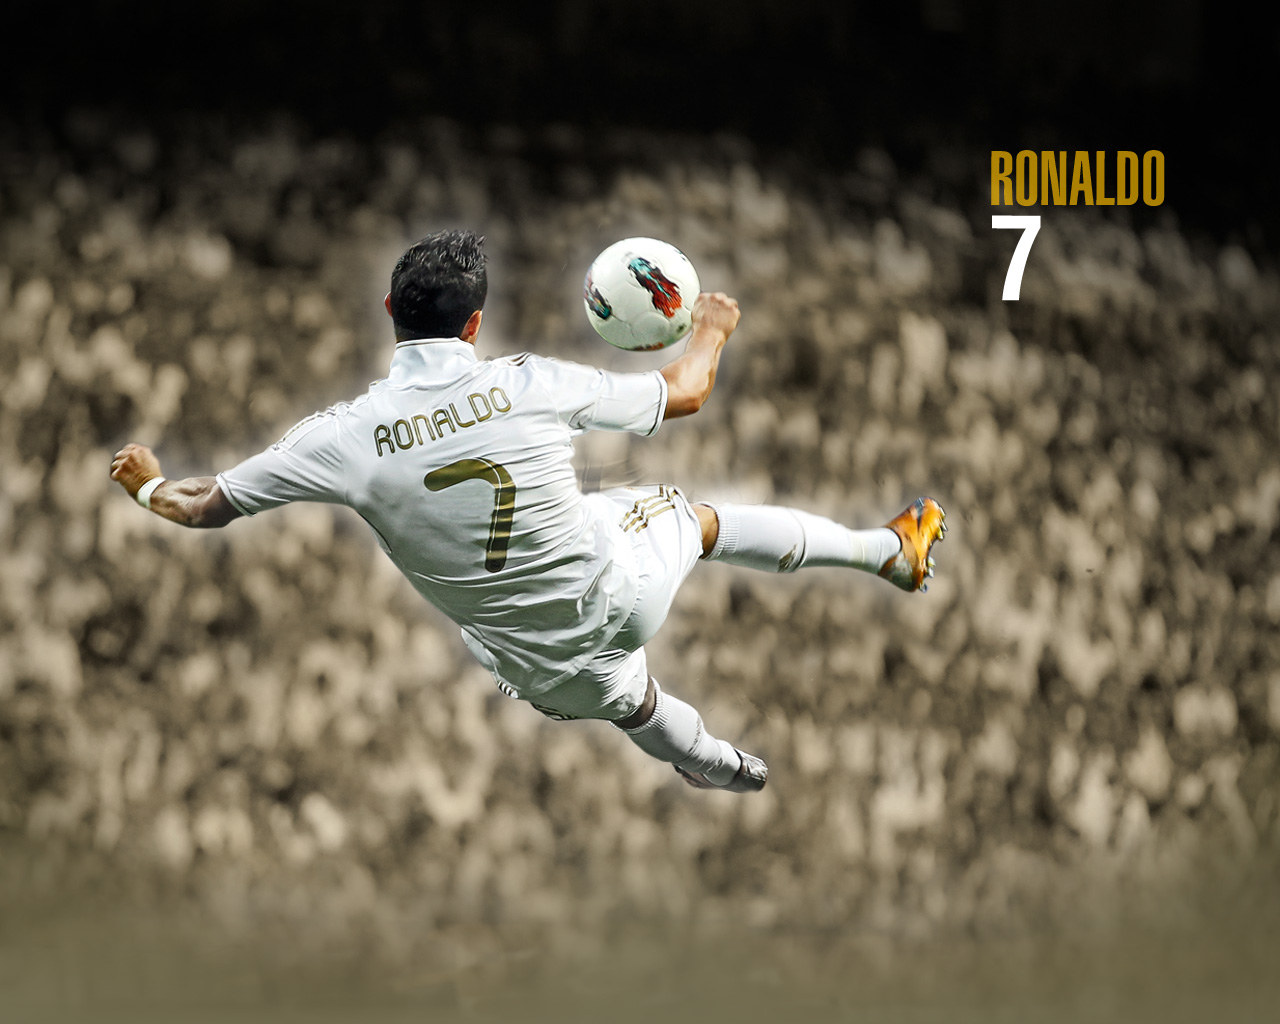 Cristiano ronaldo 2013 wallpapers free wallpapers - Download cr7 photos ...